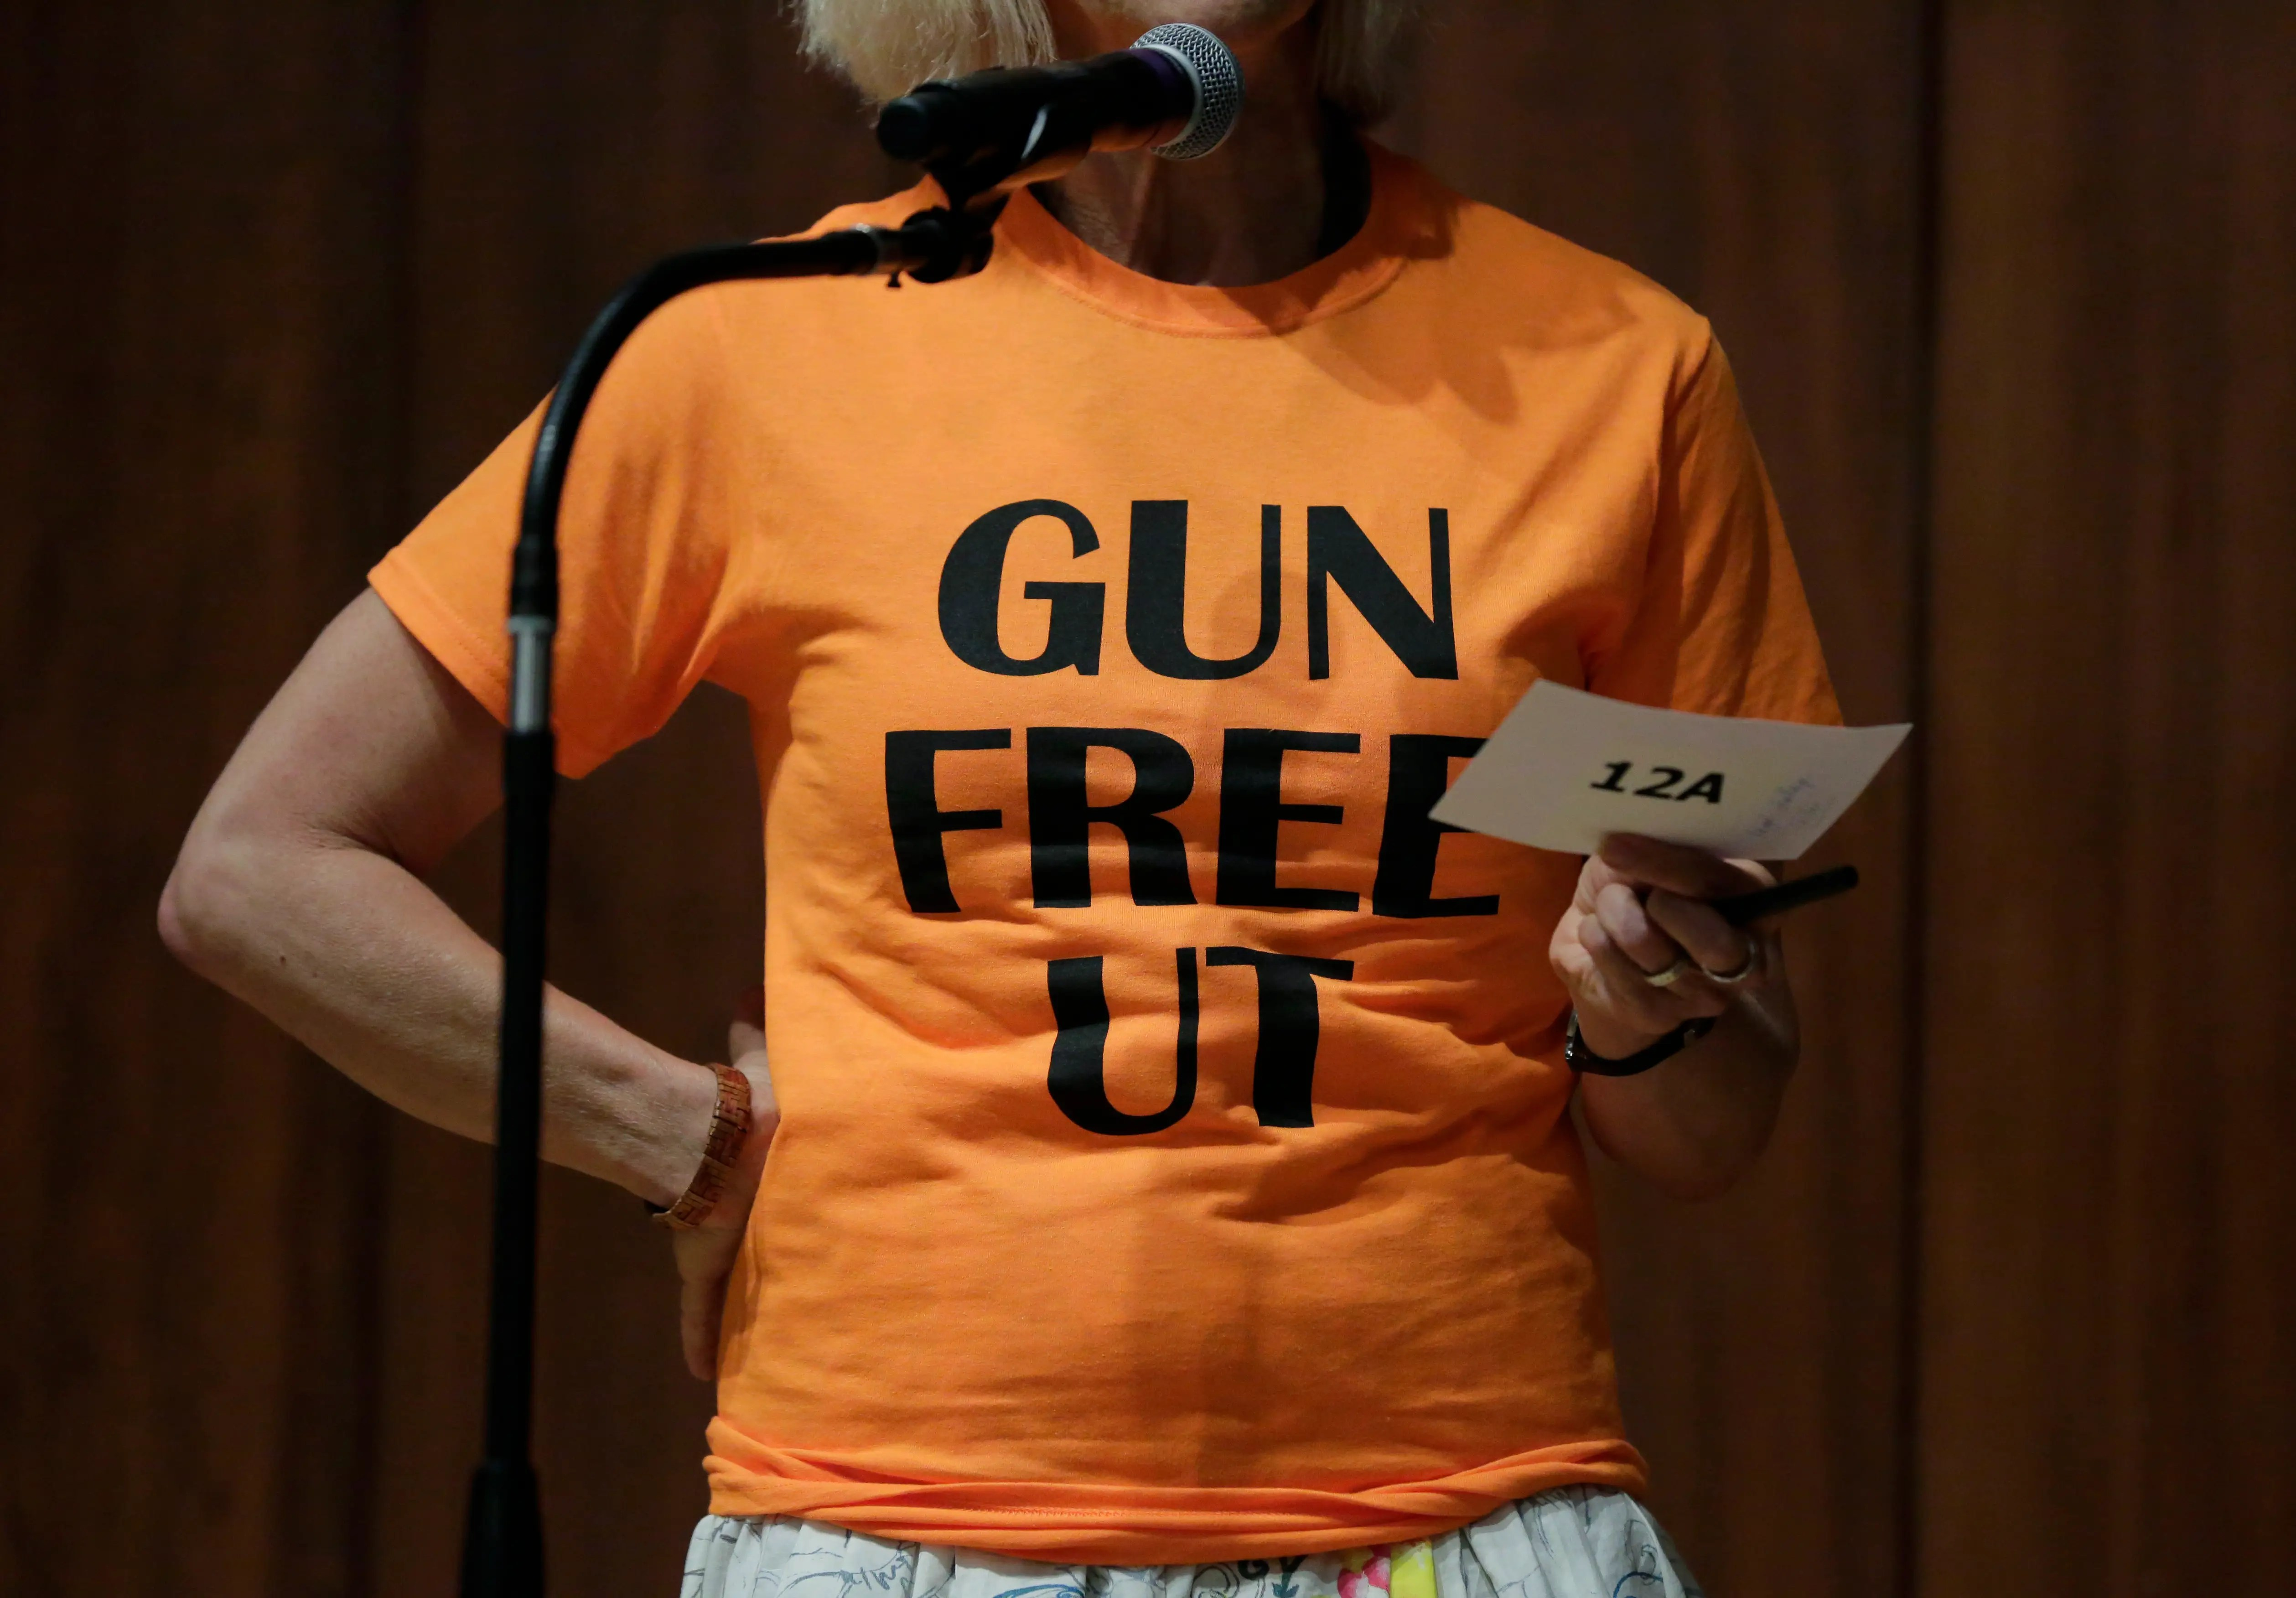 campus carry University of Texas